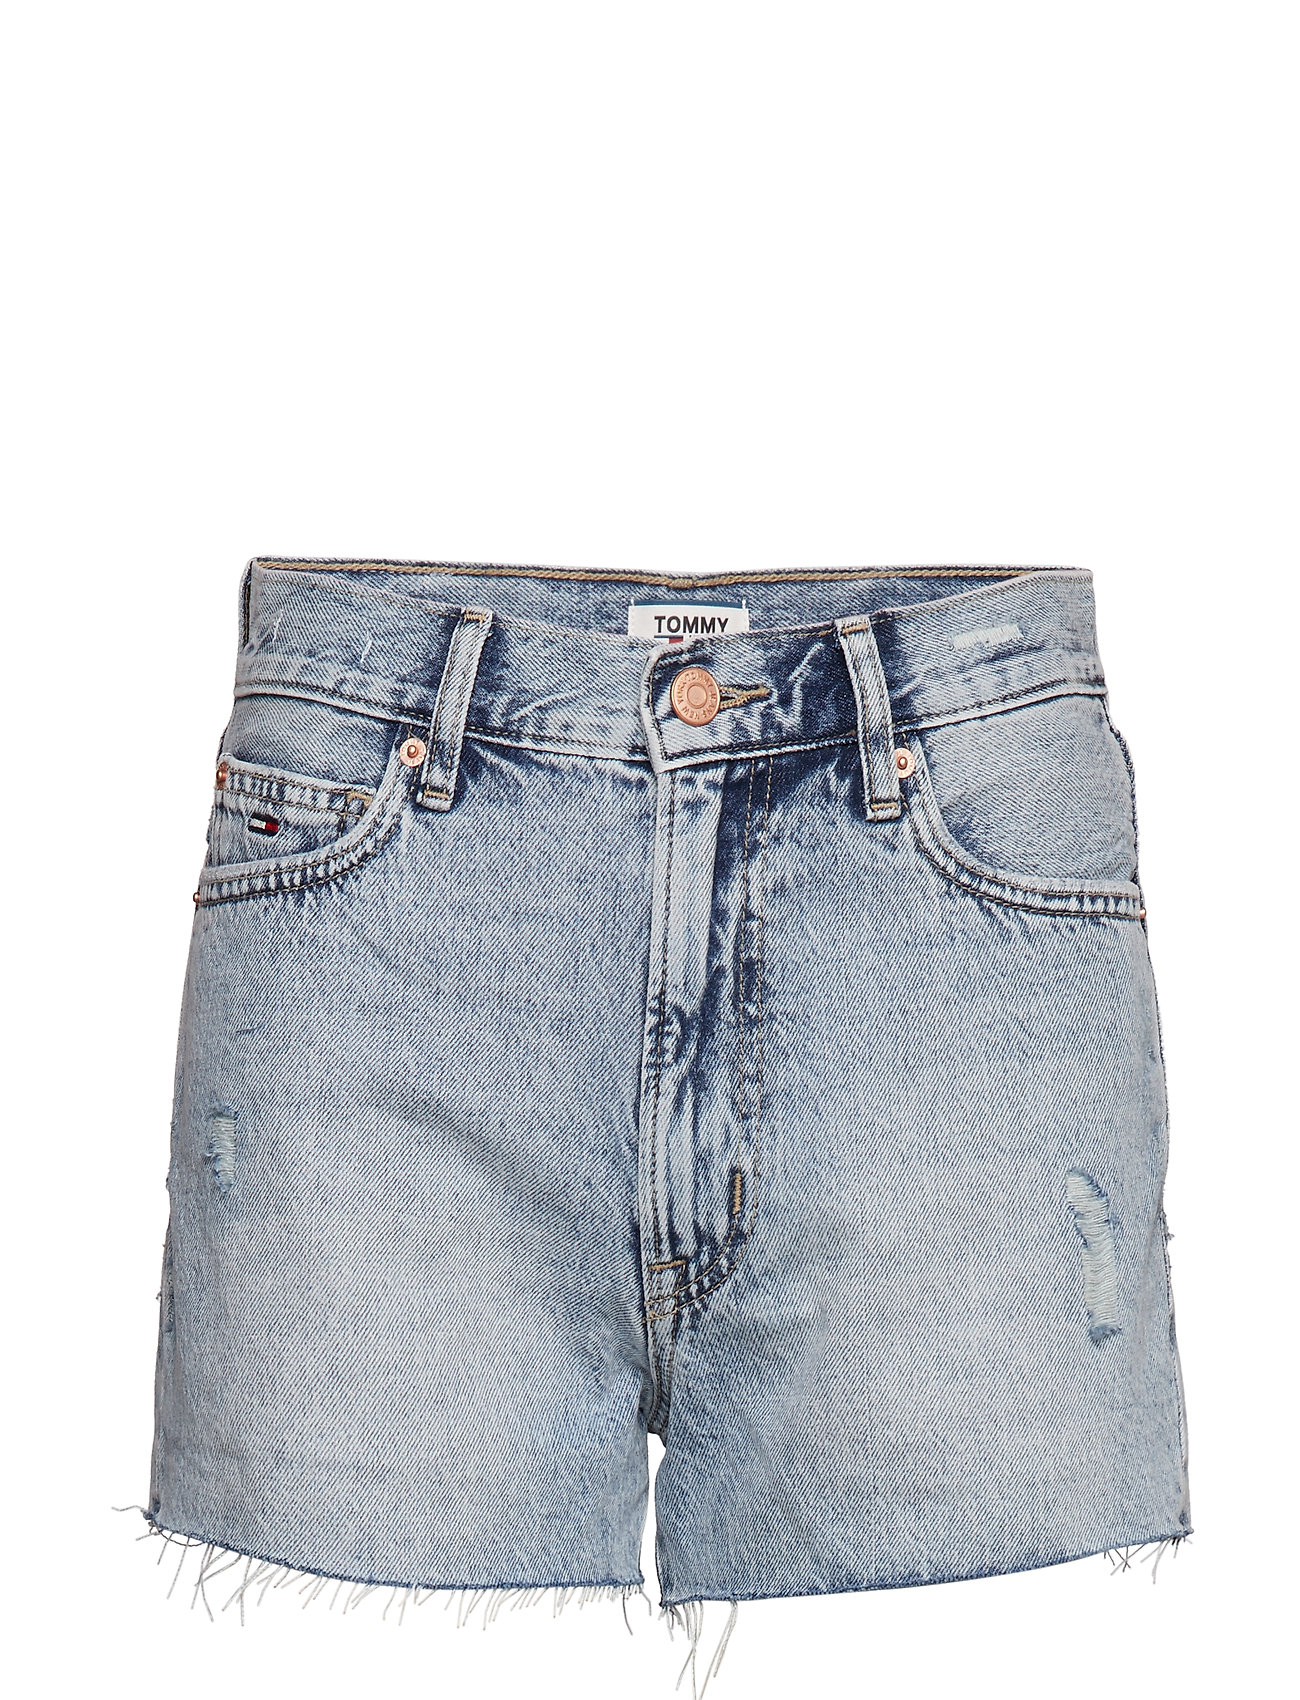 Tommy Jeans HOT PANT DENIM SHORT - TJ SILVER LT BL RIG